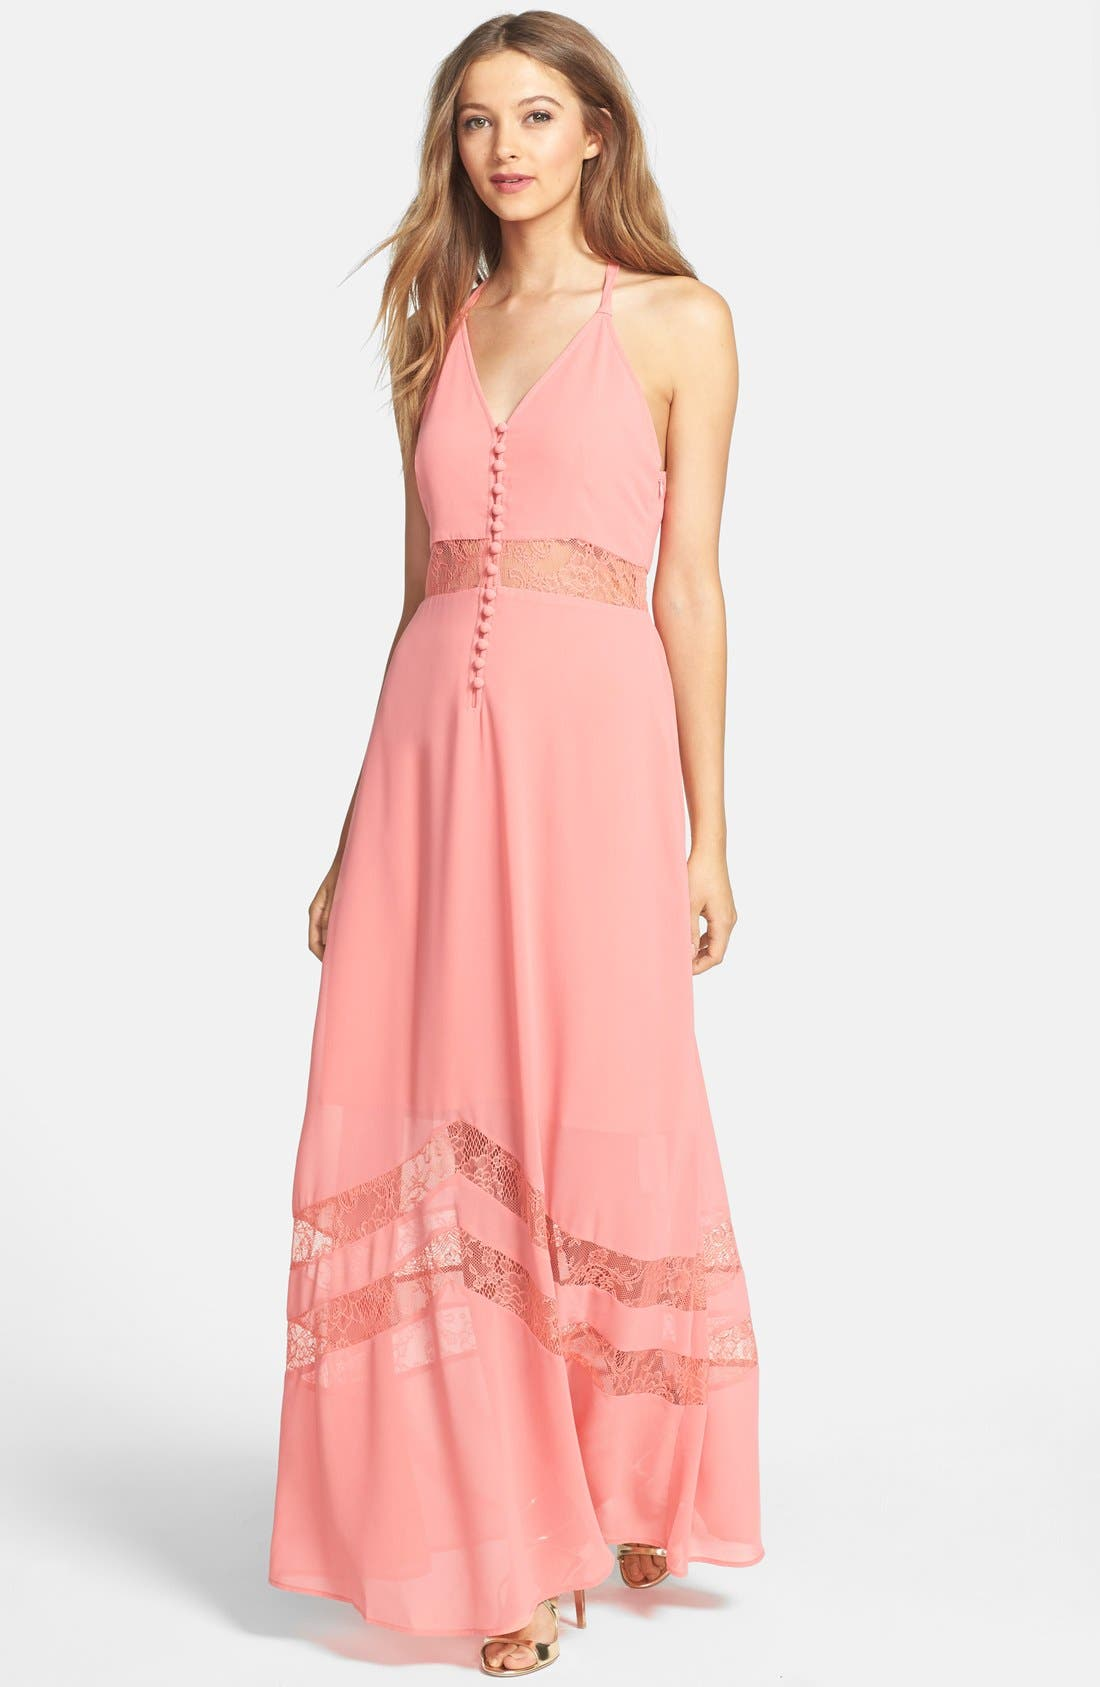 Alternate Image 1 Selected - Jarlo 'Sienna' Lace Inset T-Back Chiffon Gown